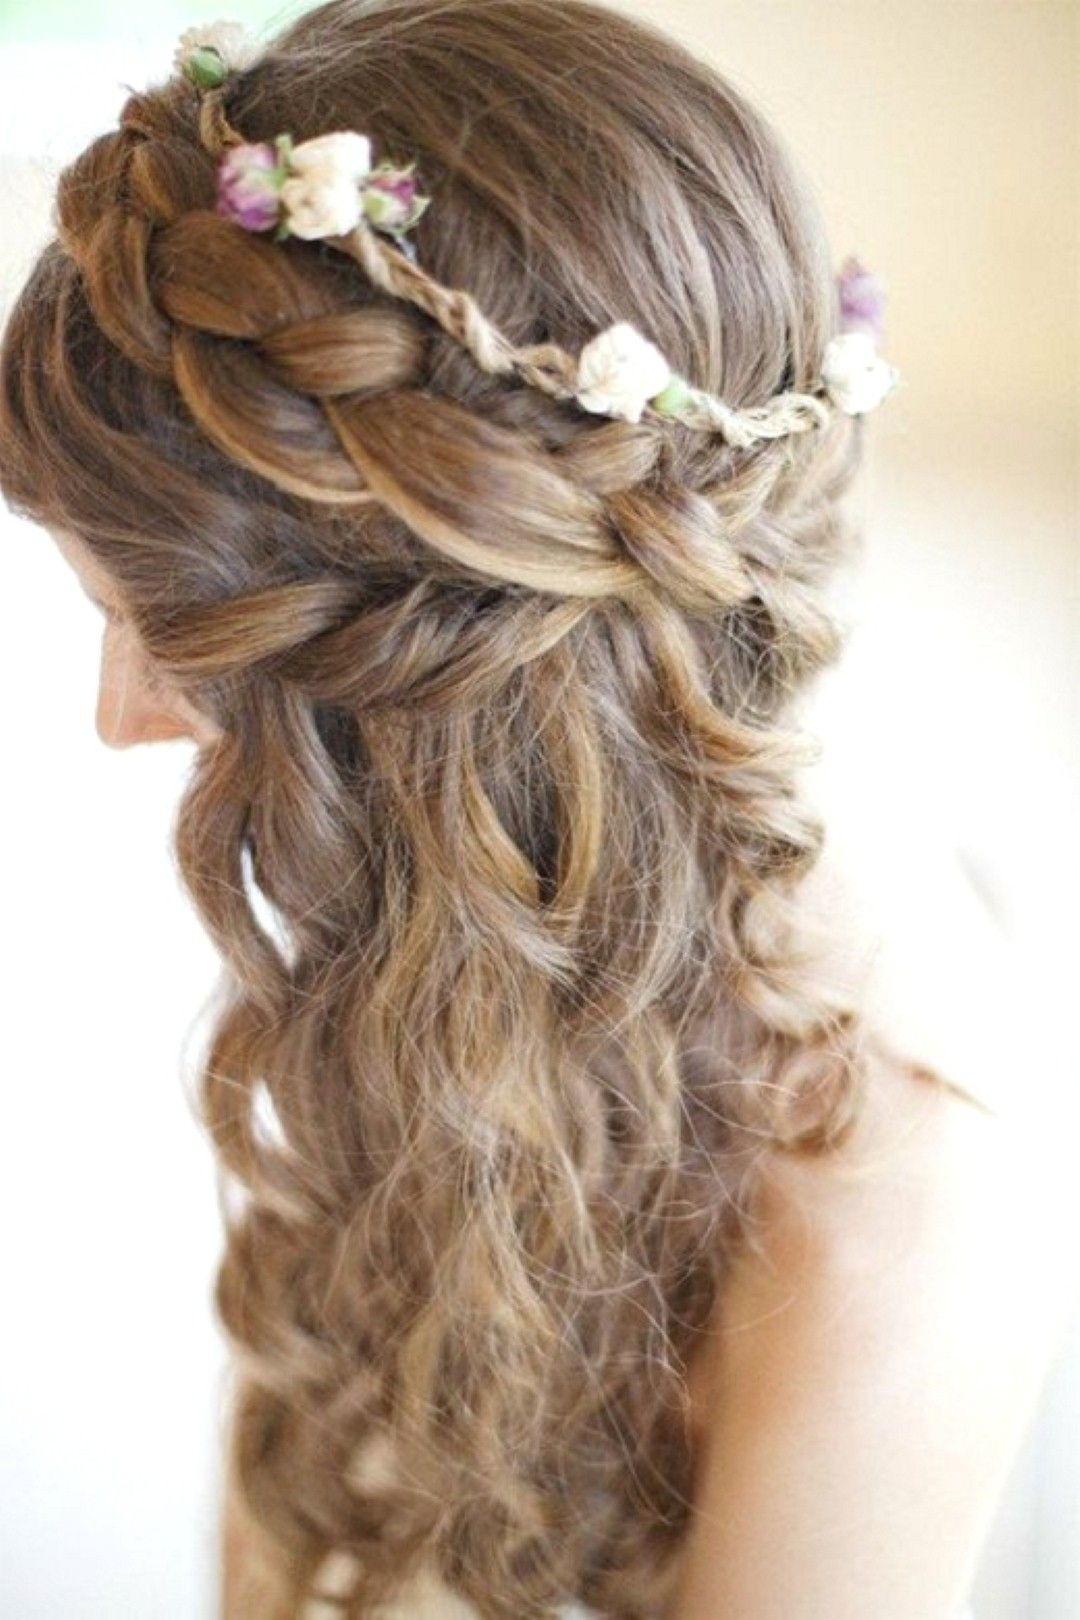 Swell 1000 Images About Prom Hair Styels On Pinterest Prom Hairstyles Short Hairstyles Gunalazisus